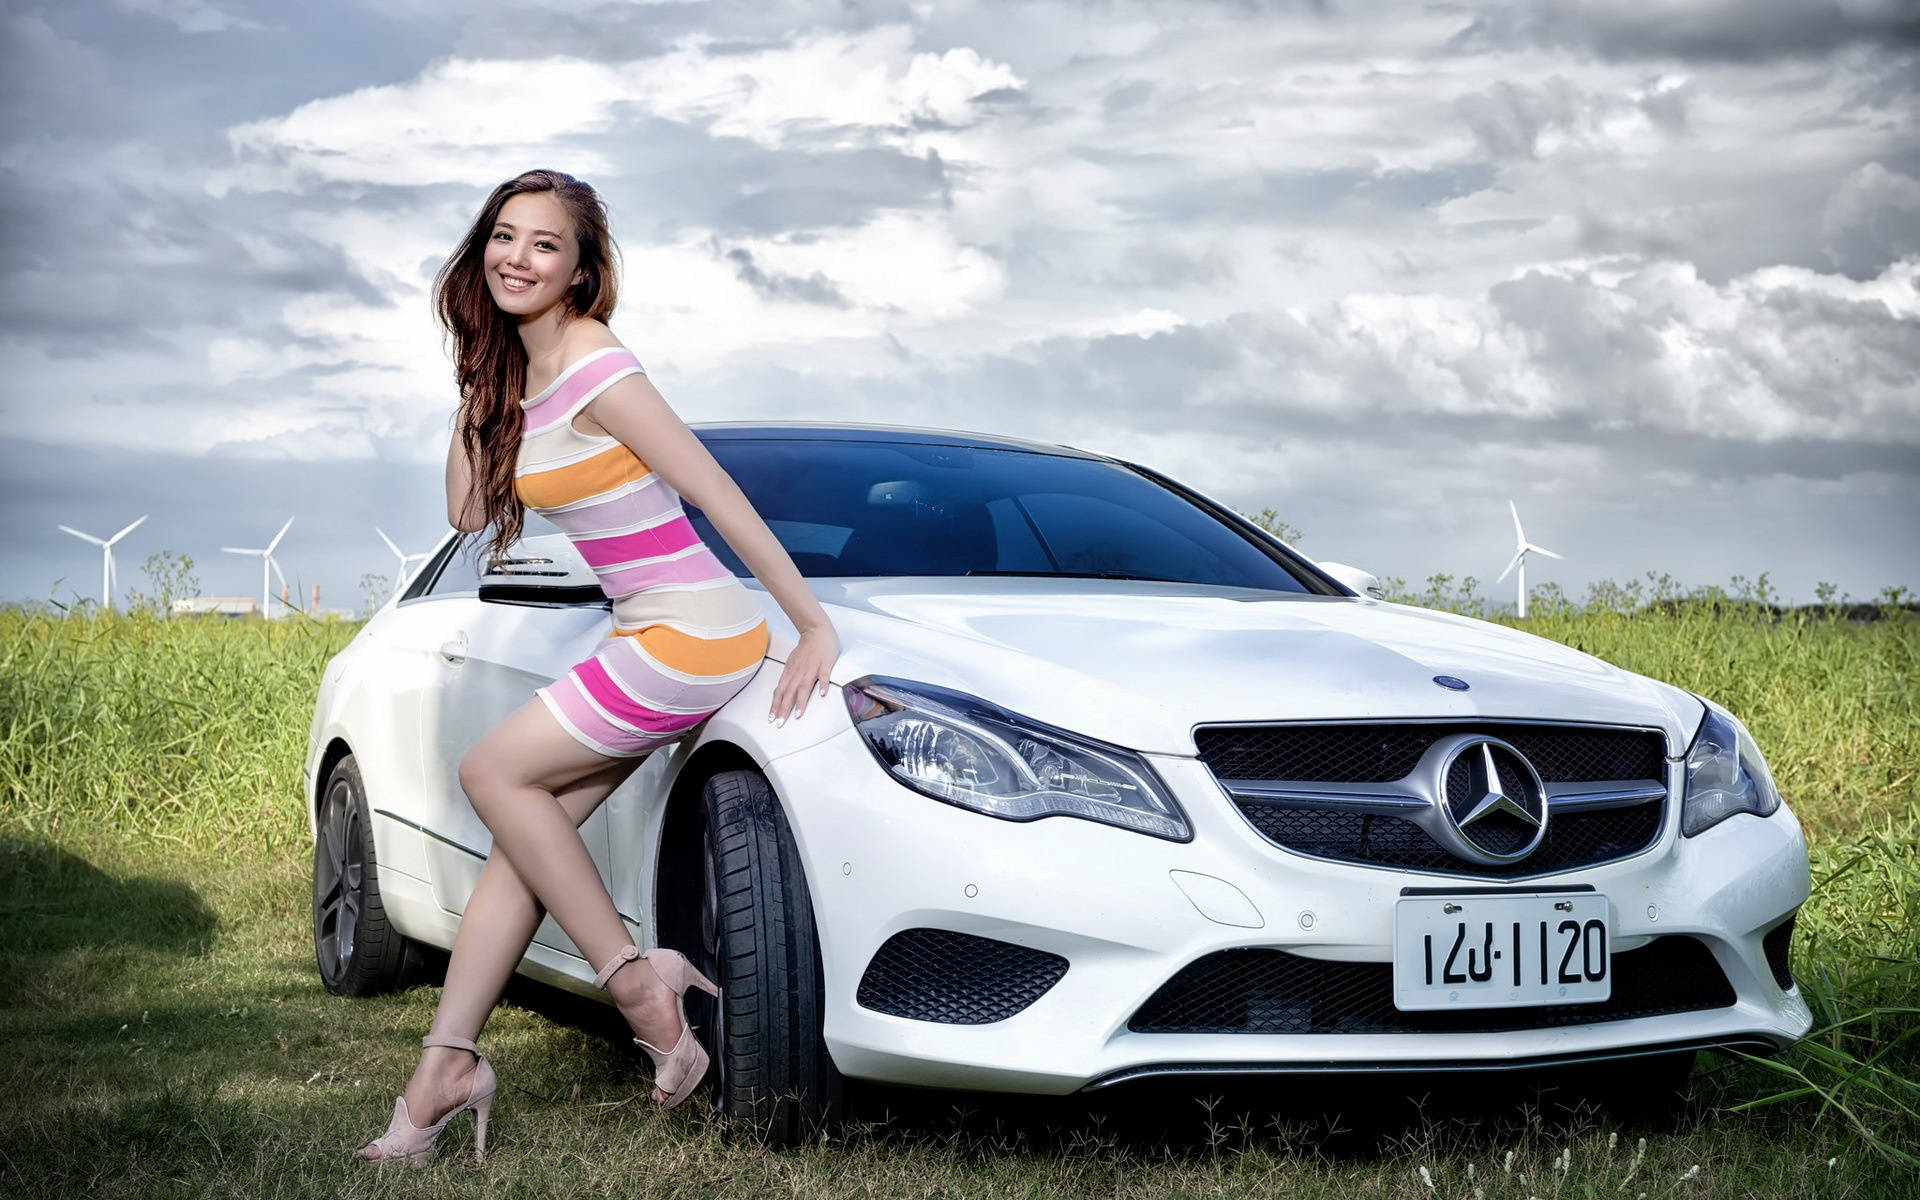 Naked car hot girls